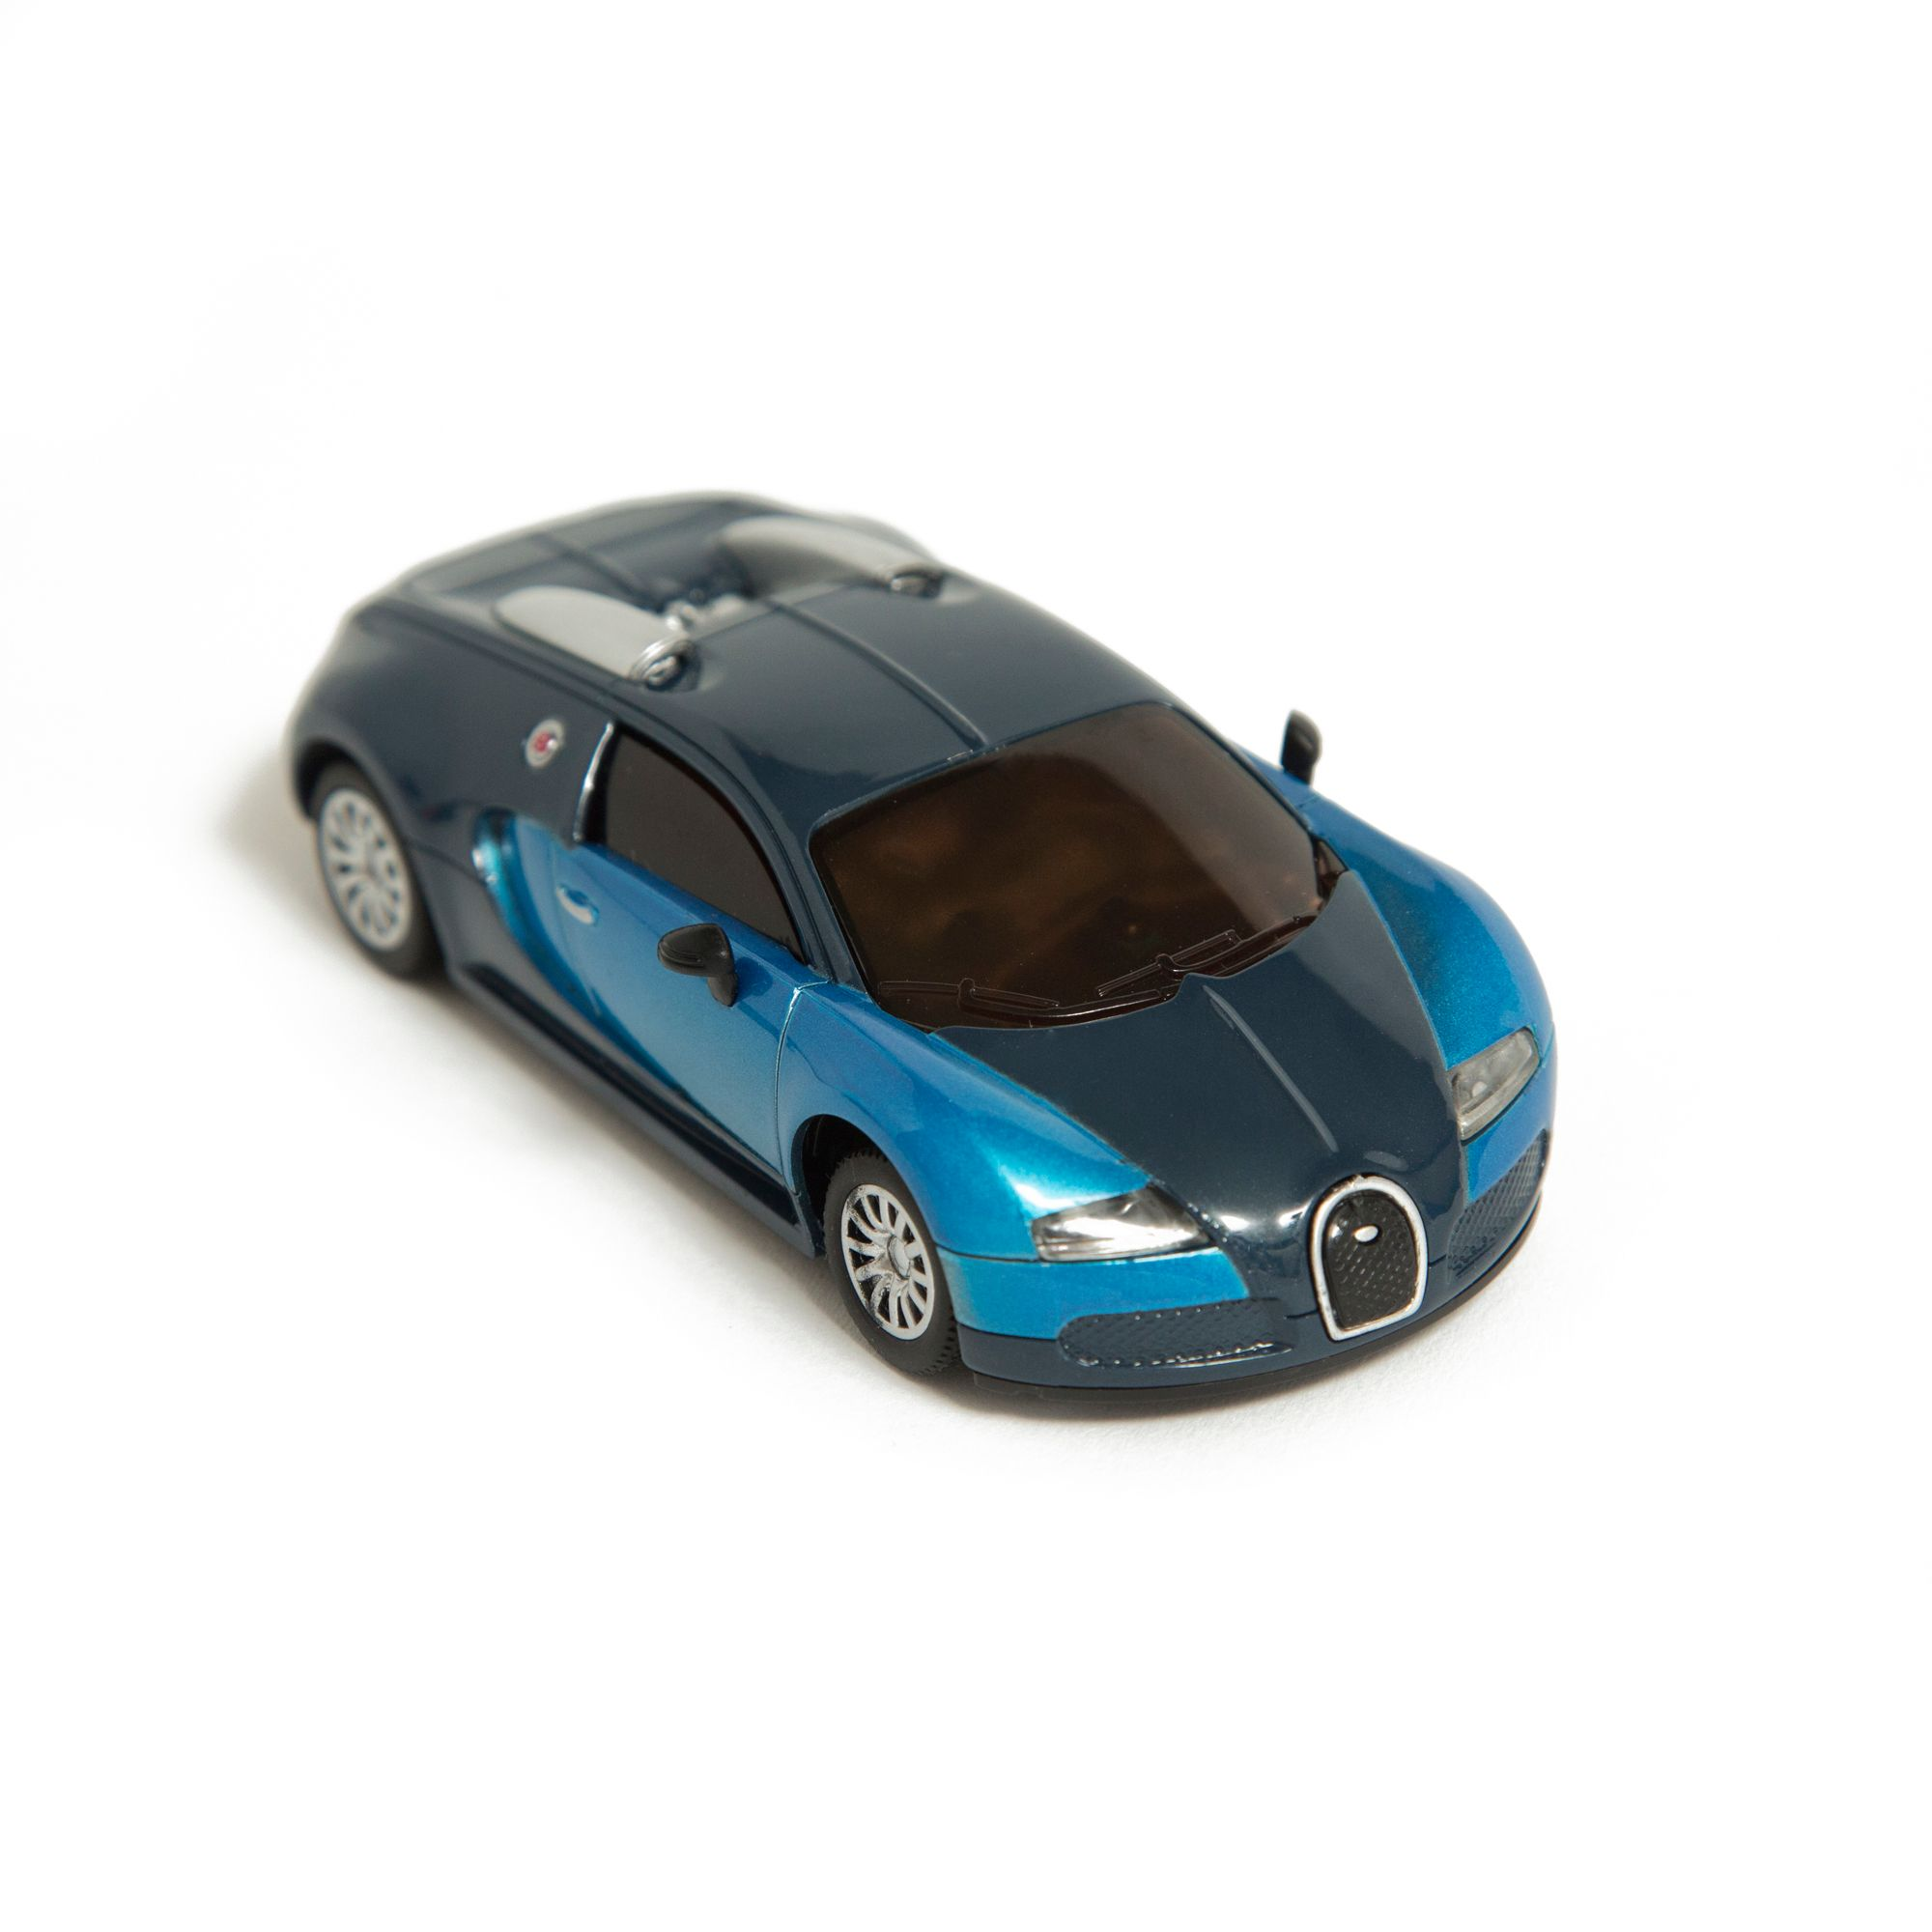 Image of Hamleys Blue Mini Bugatti Veyron IR Car, Blue